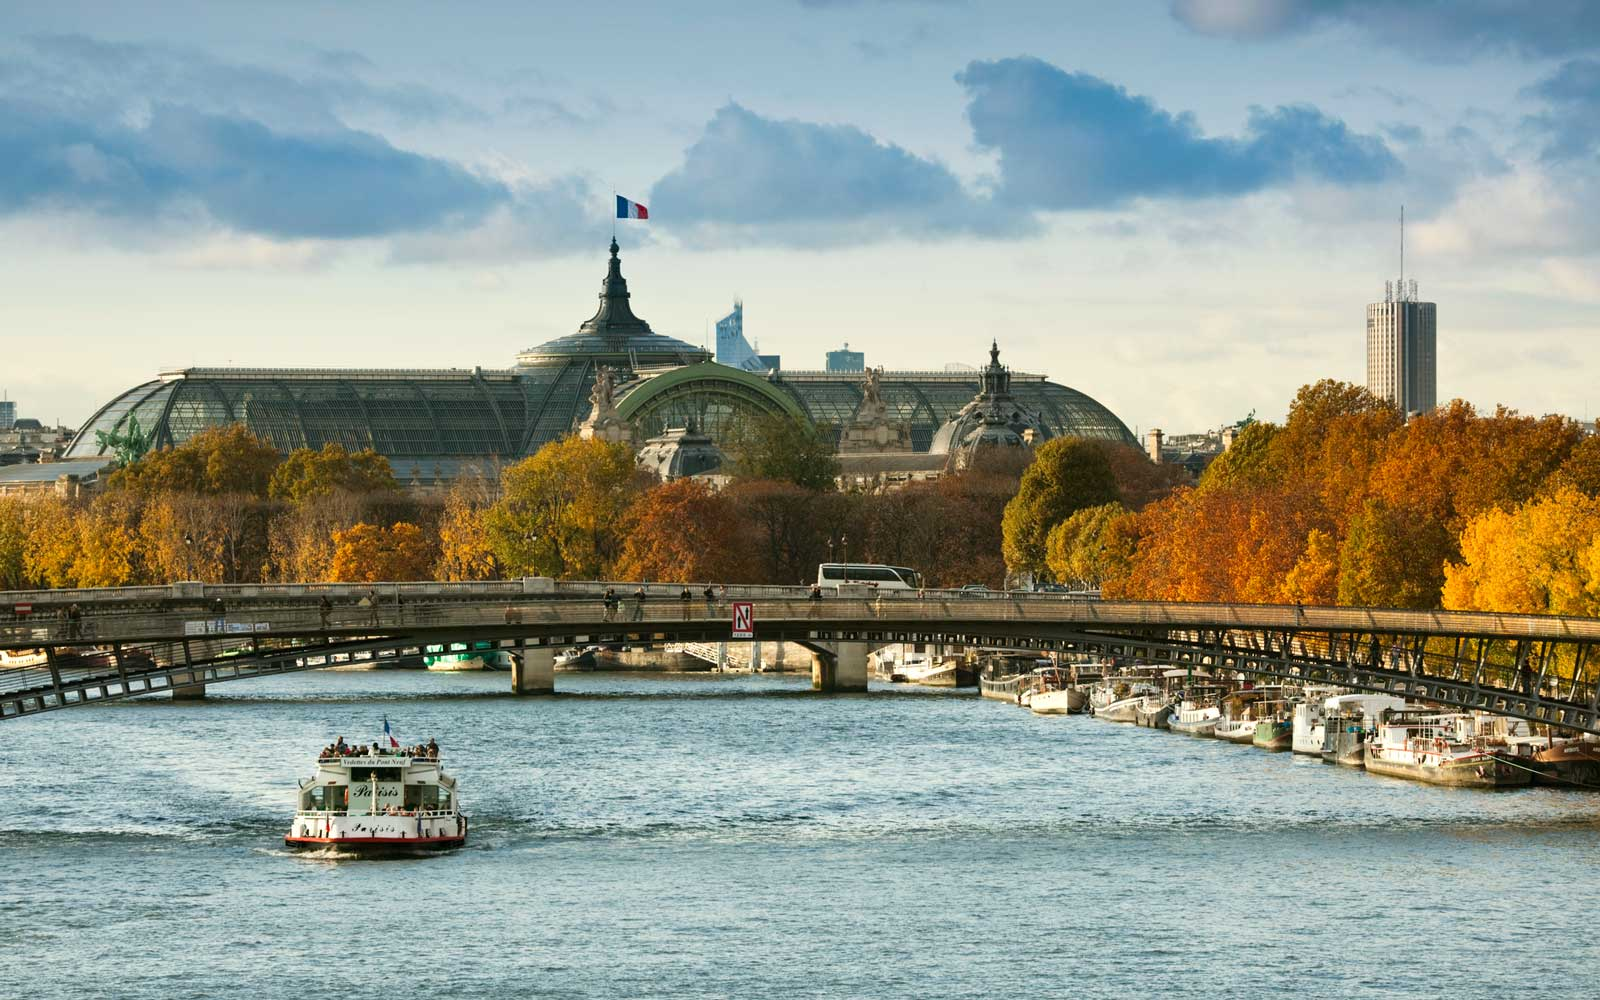 France, Paris, Grand Palais and Seine River